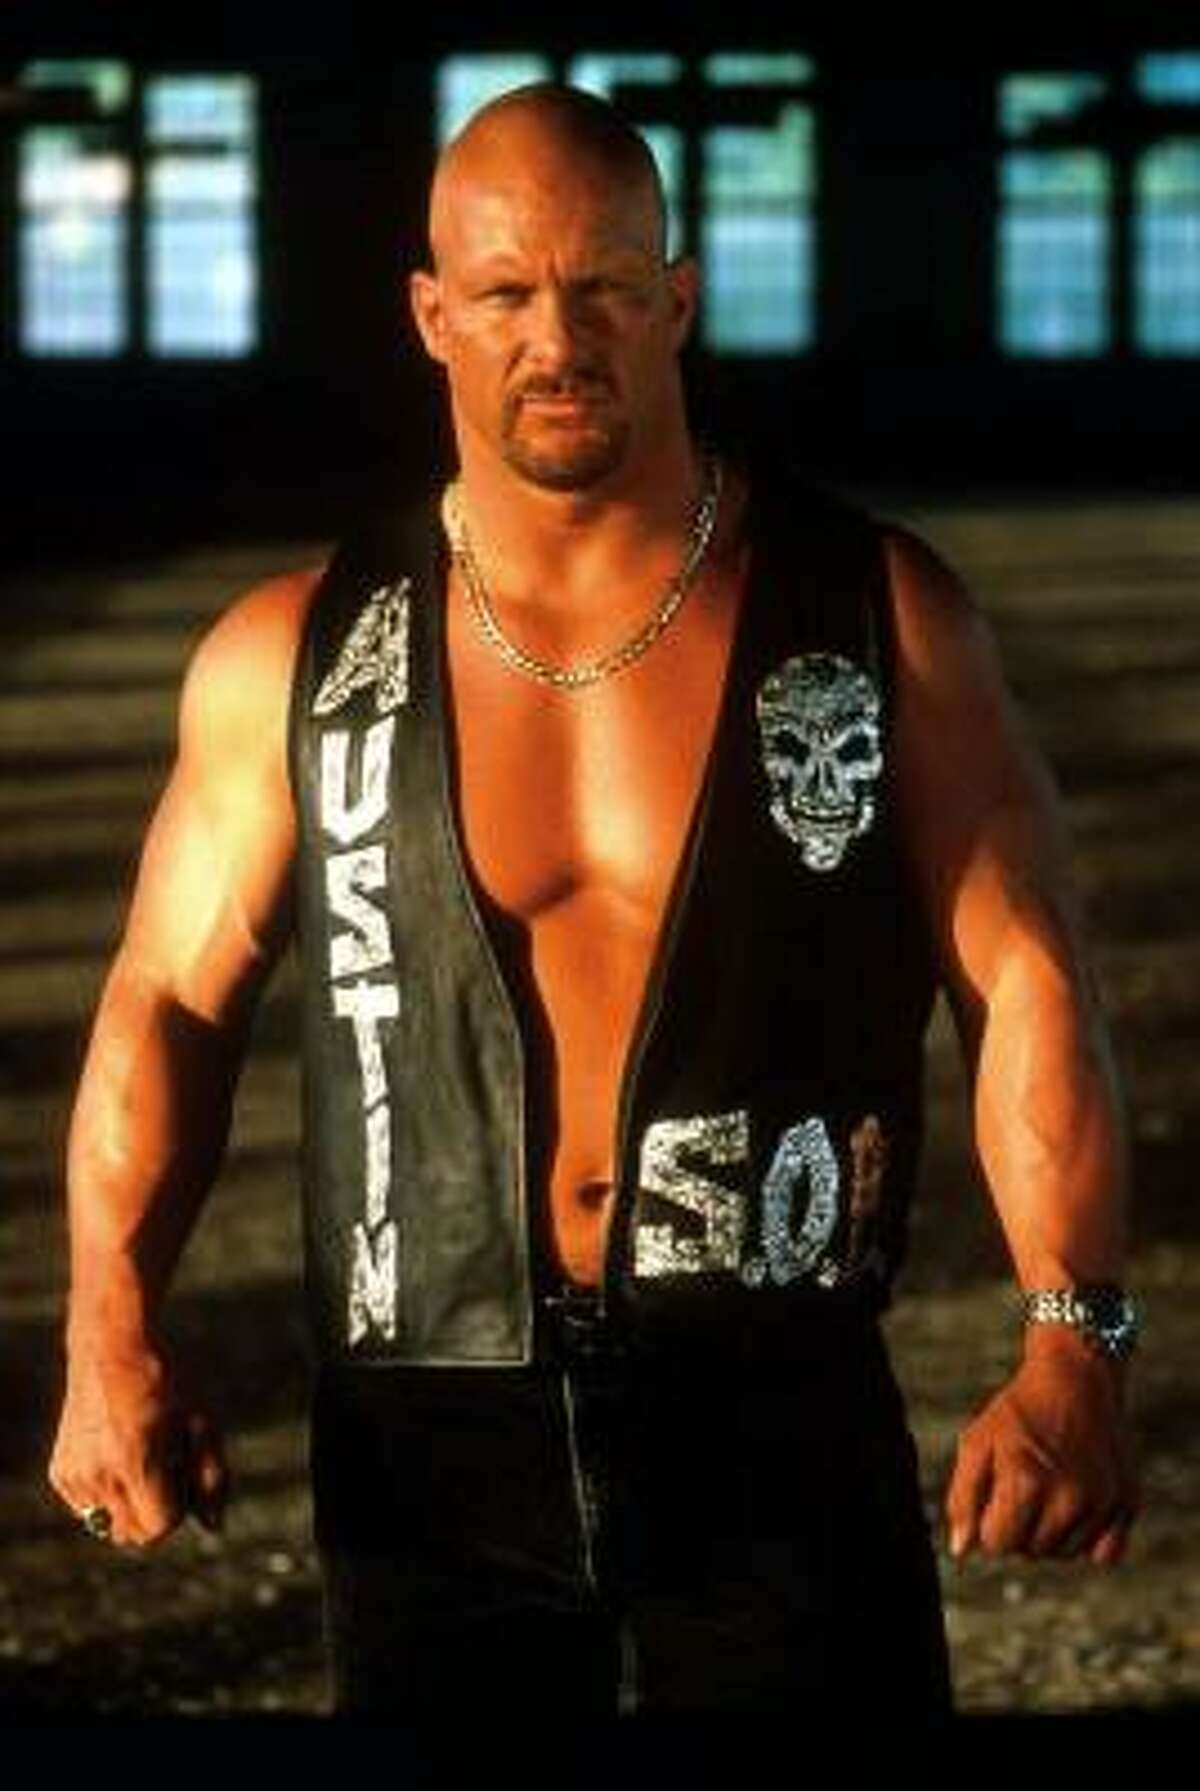 Professional wrestler Stone Cold Steve Austin recently announced that he backs gay marriage. The Texas native made the announcement on his podcast, and revealed that he has friends who are gay.Keep clicking to see which other Texas stars are for same-sex marriage.